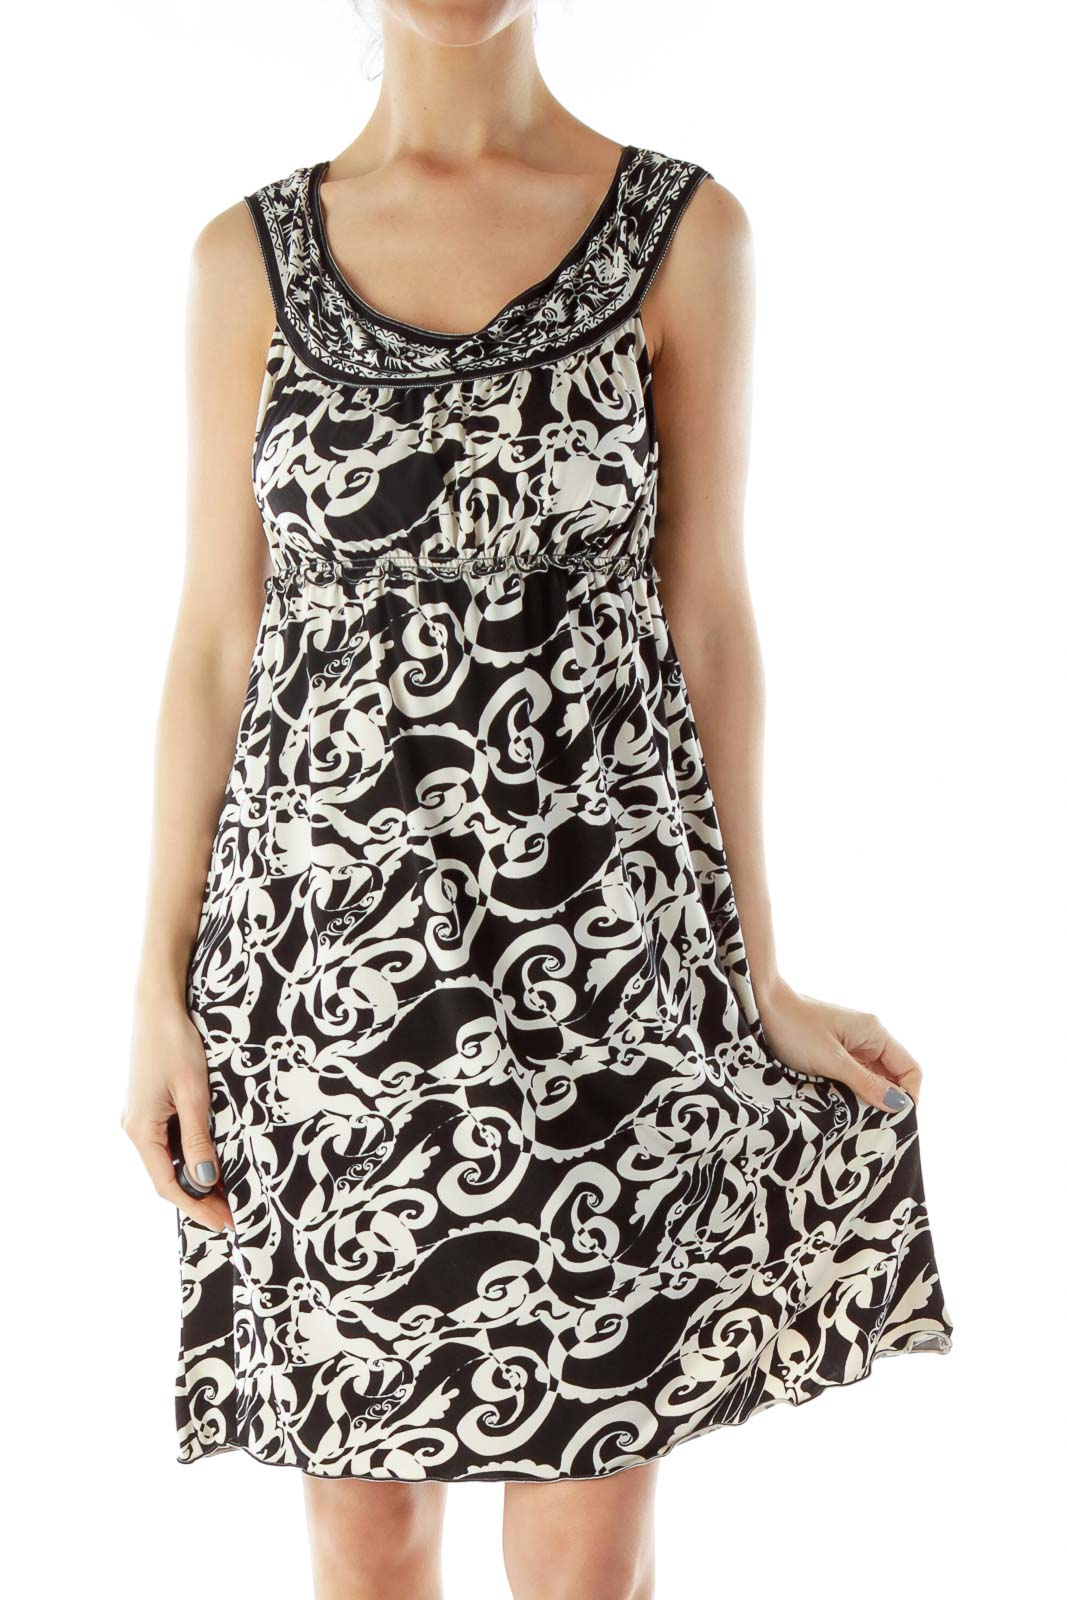 Black White Print Dress with Boat Neckline Front